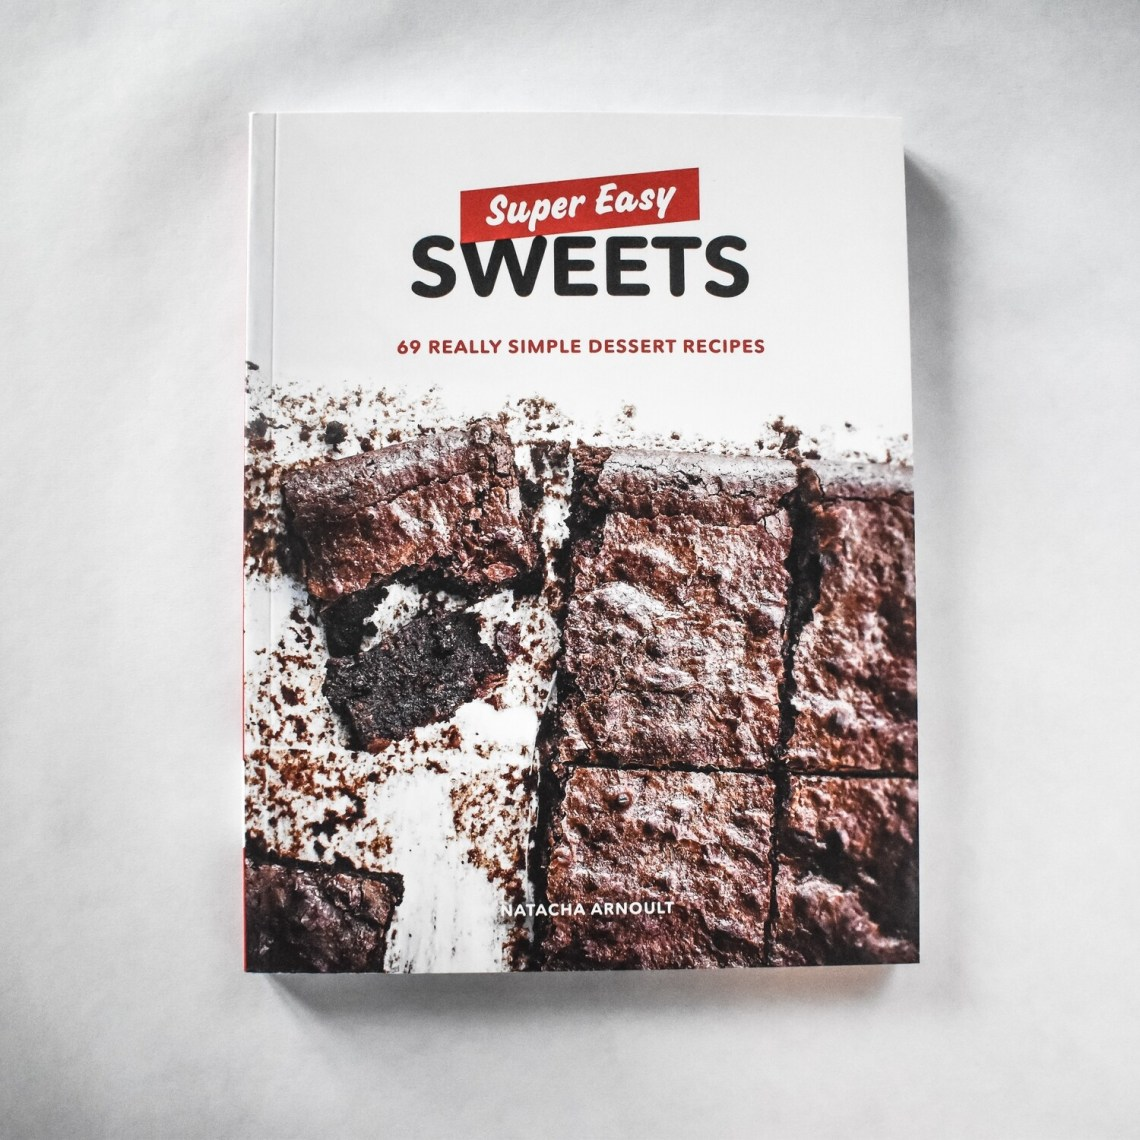 Super Easy Sweets - by Natacha Arnoult